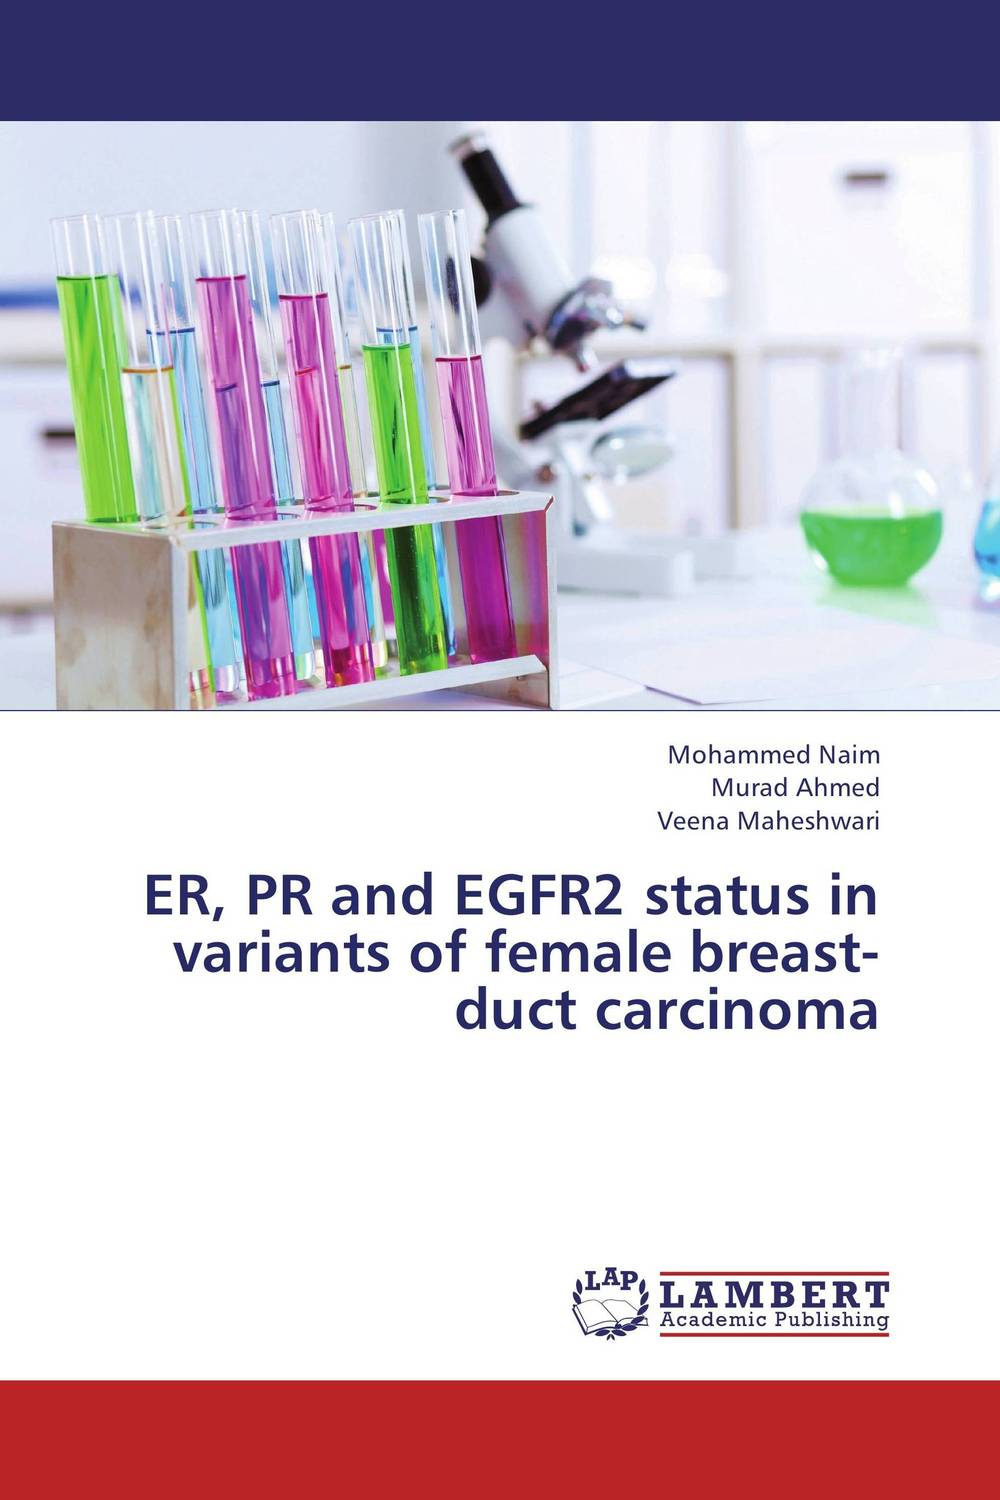 ER, PR and EGFR2 status in variants of female breast-duct carcinoma